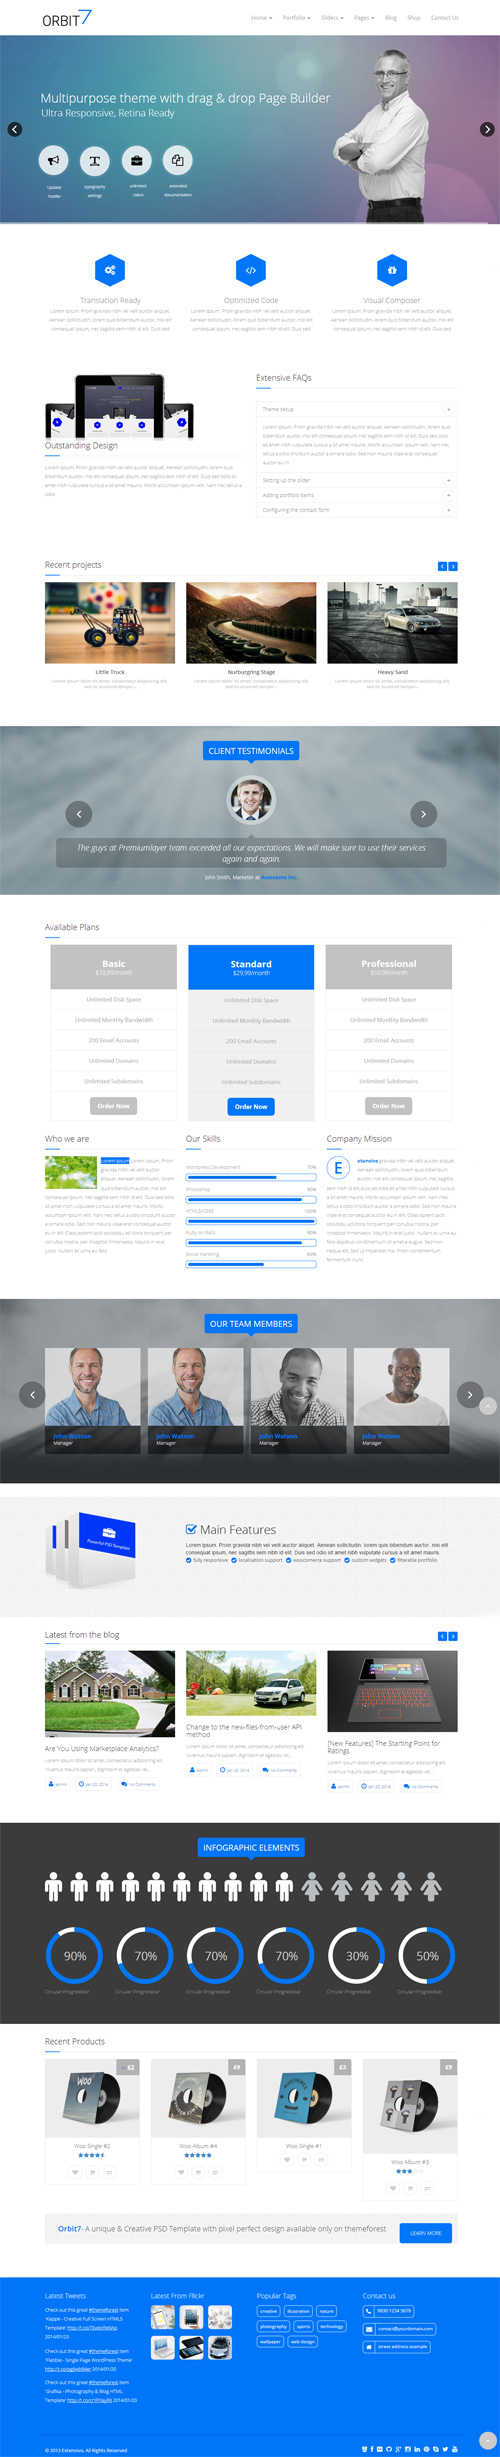 Orbit7 - Premium Multipurpose WordPress Theme